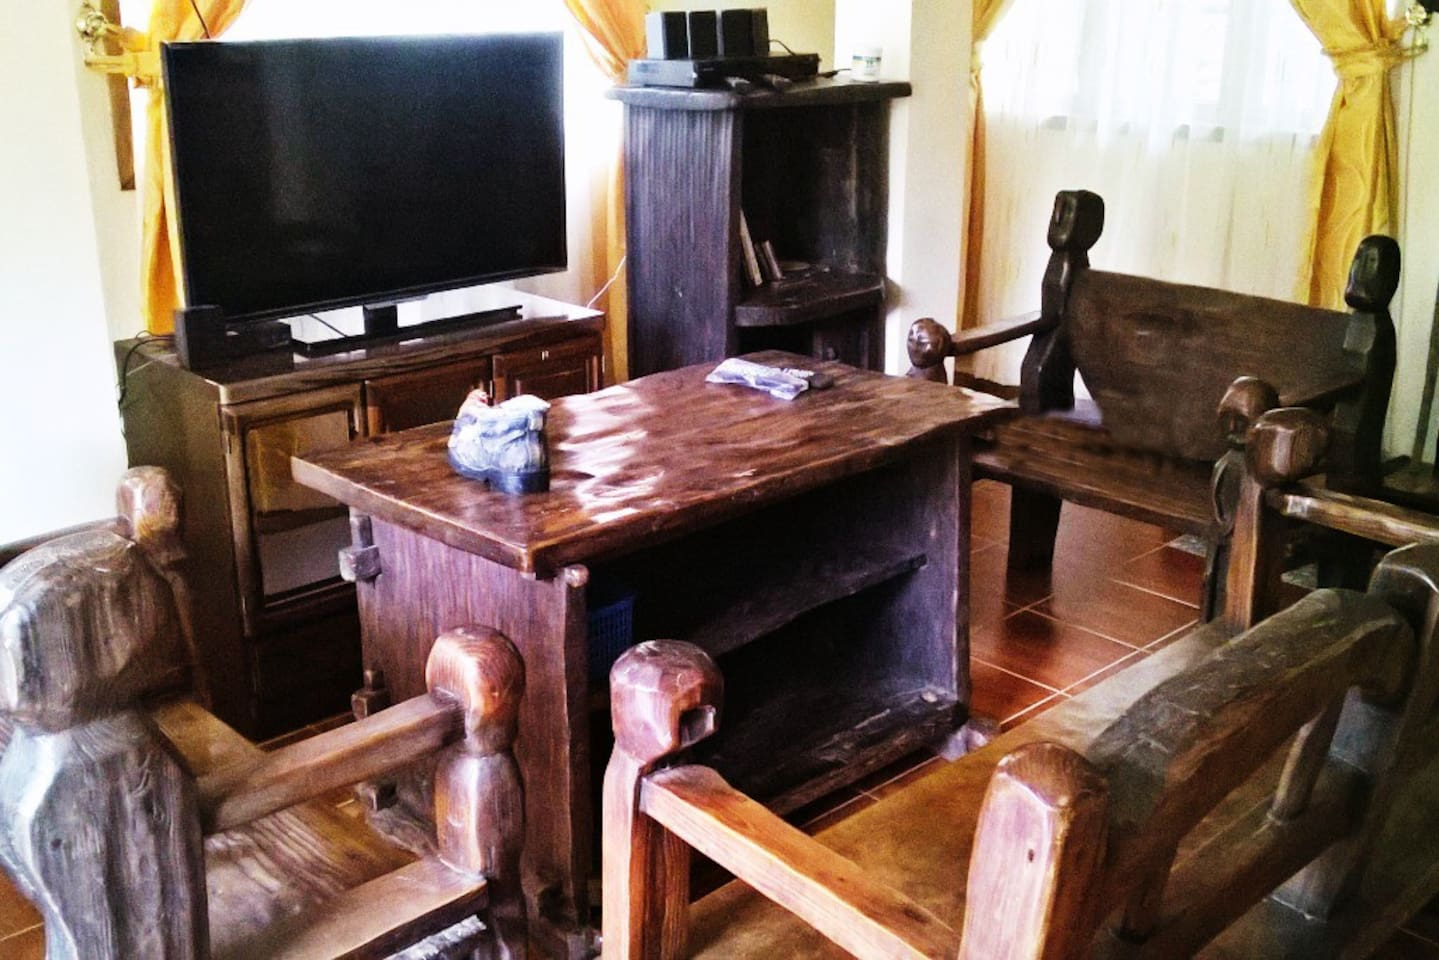 Wooden crib for sale quezon city - Biag S Crib Guesthouse For Rent In Sagada Cordillera Administrative Region Philippines